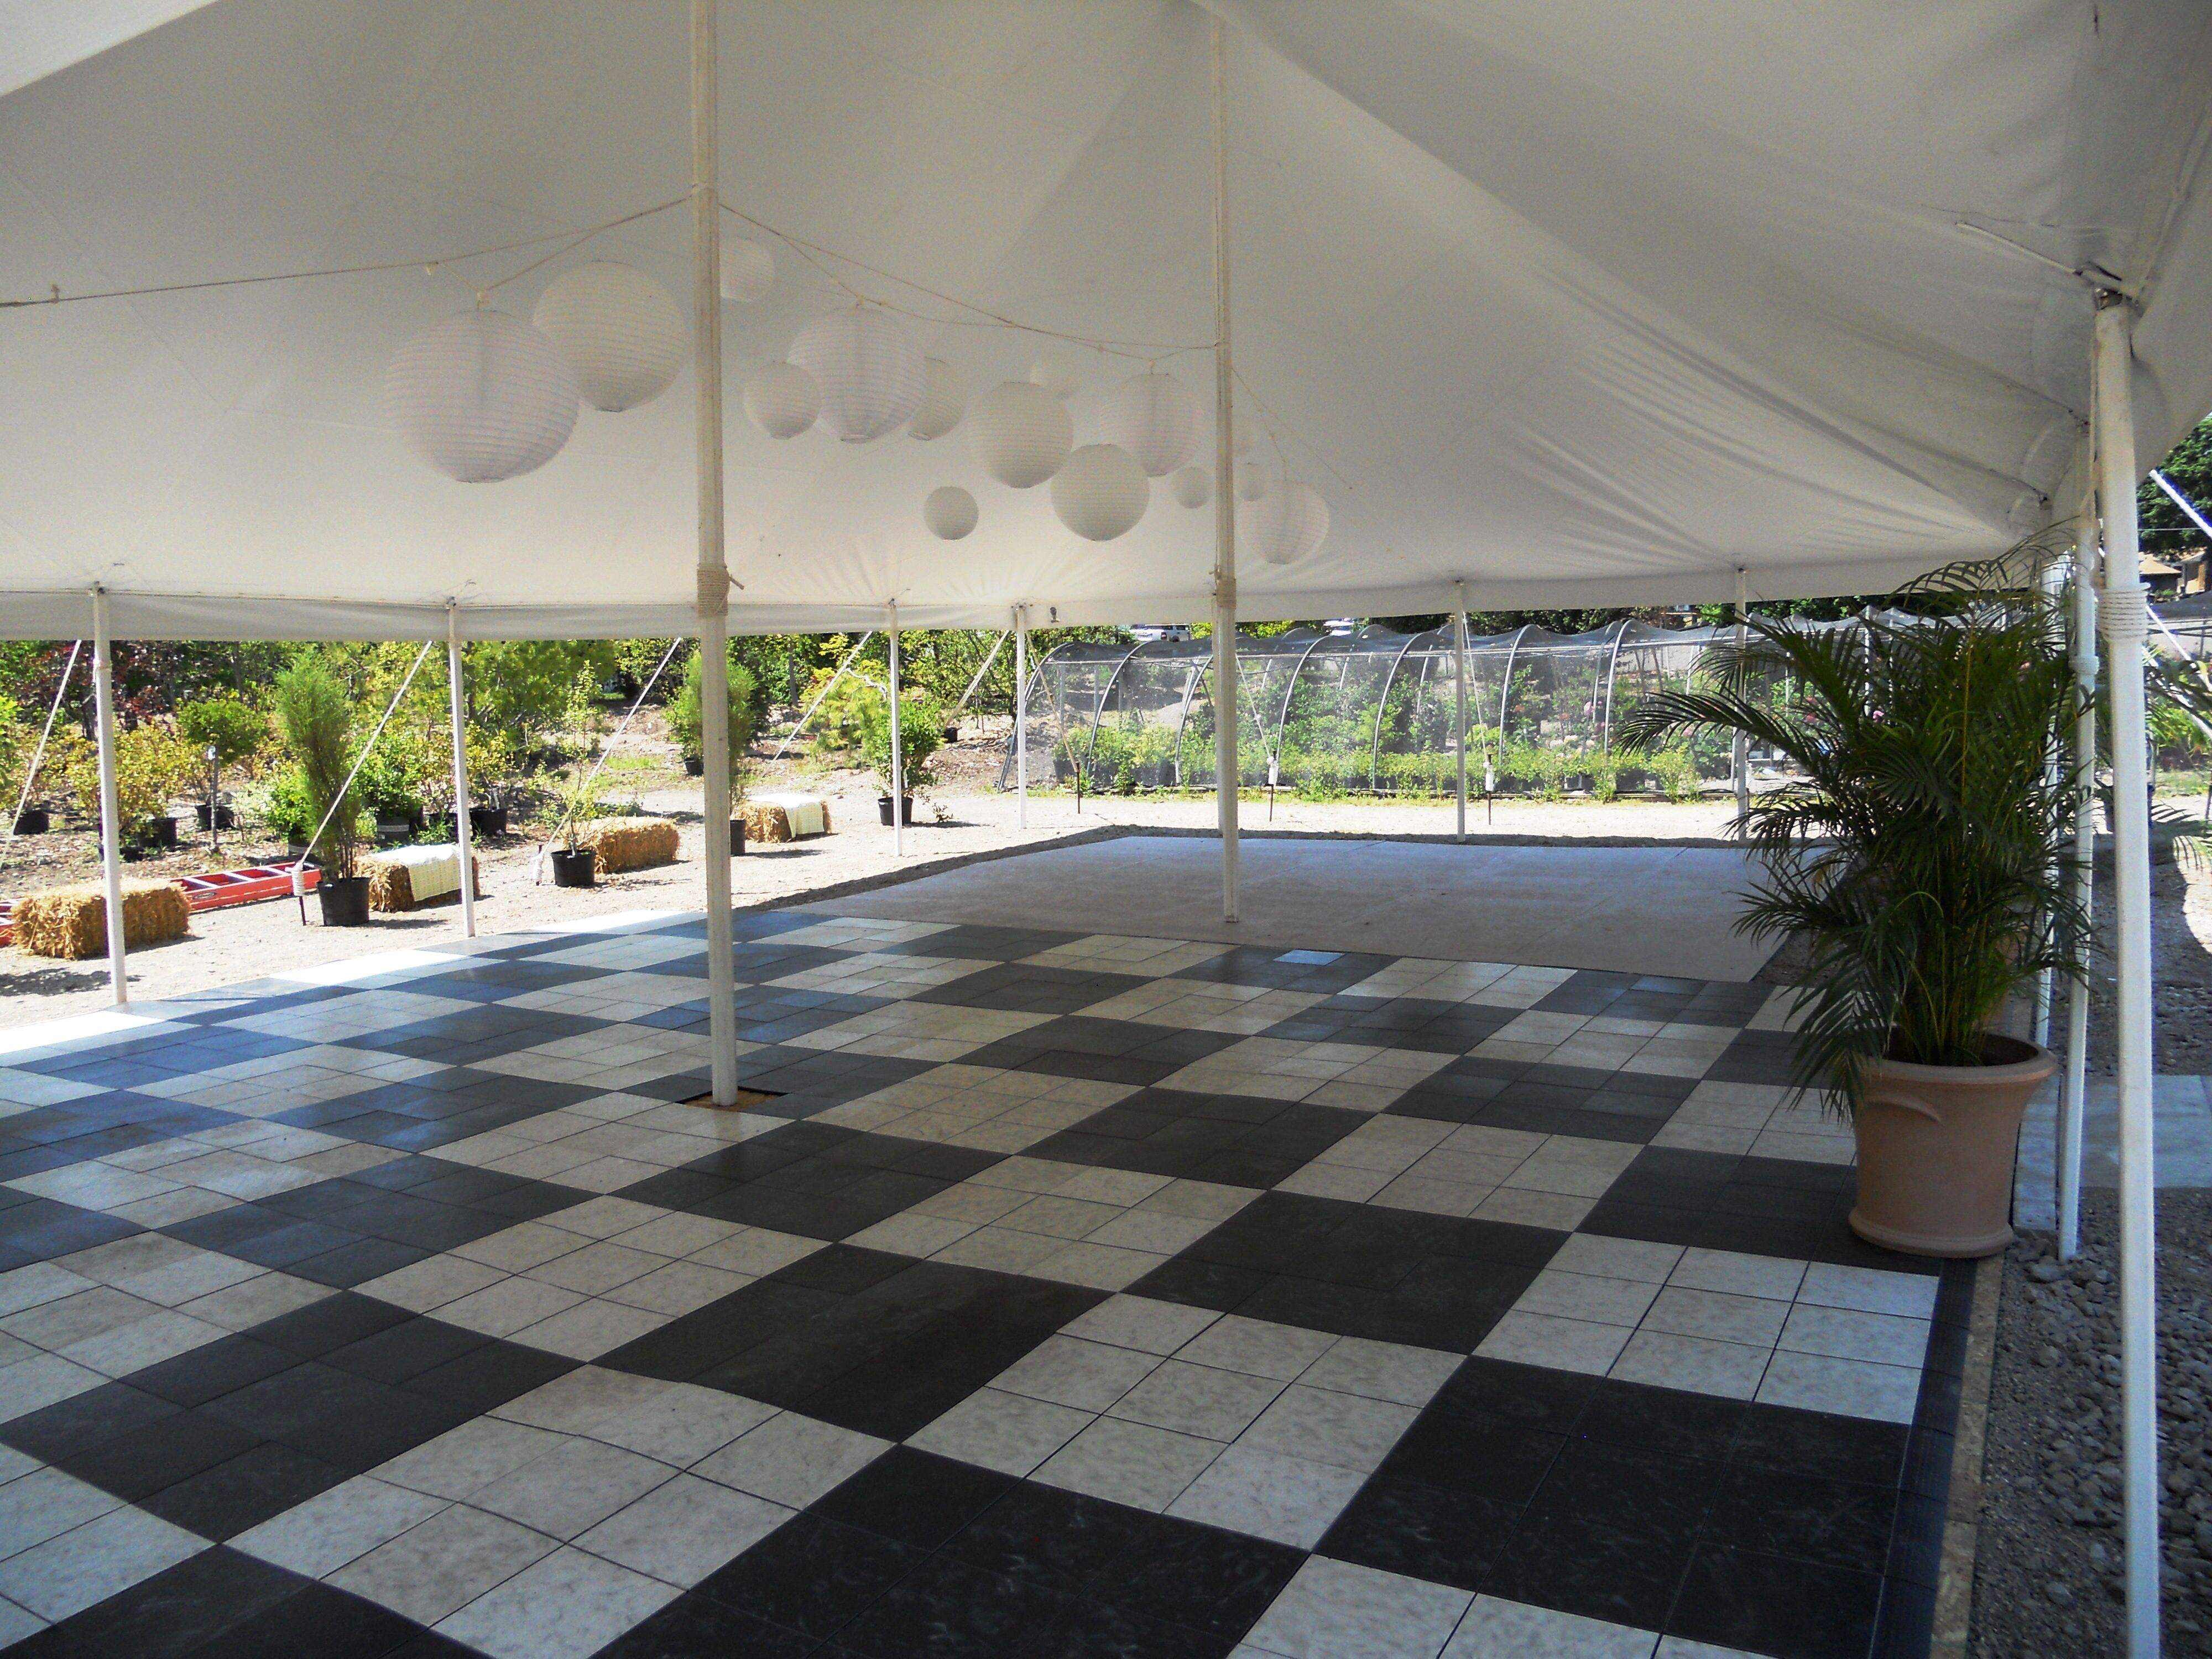 Pin on Rental tent & event lighting, heating, air cooling etc.